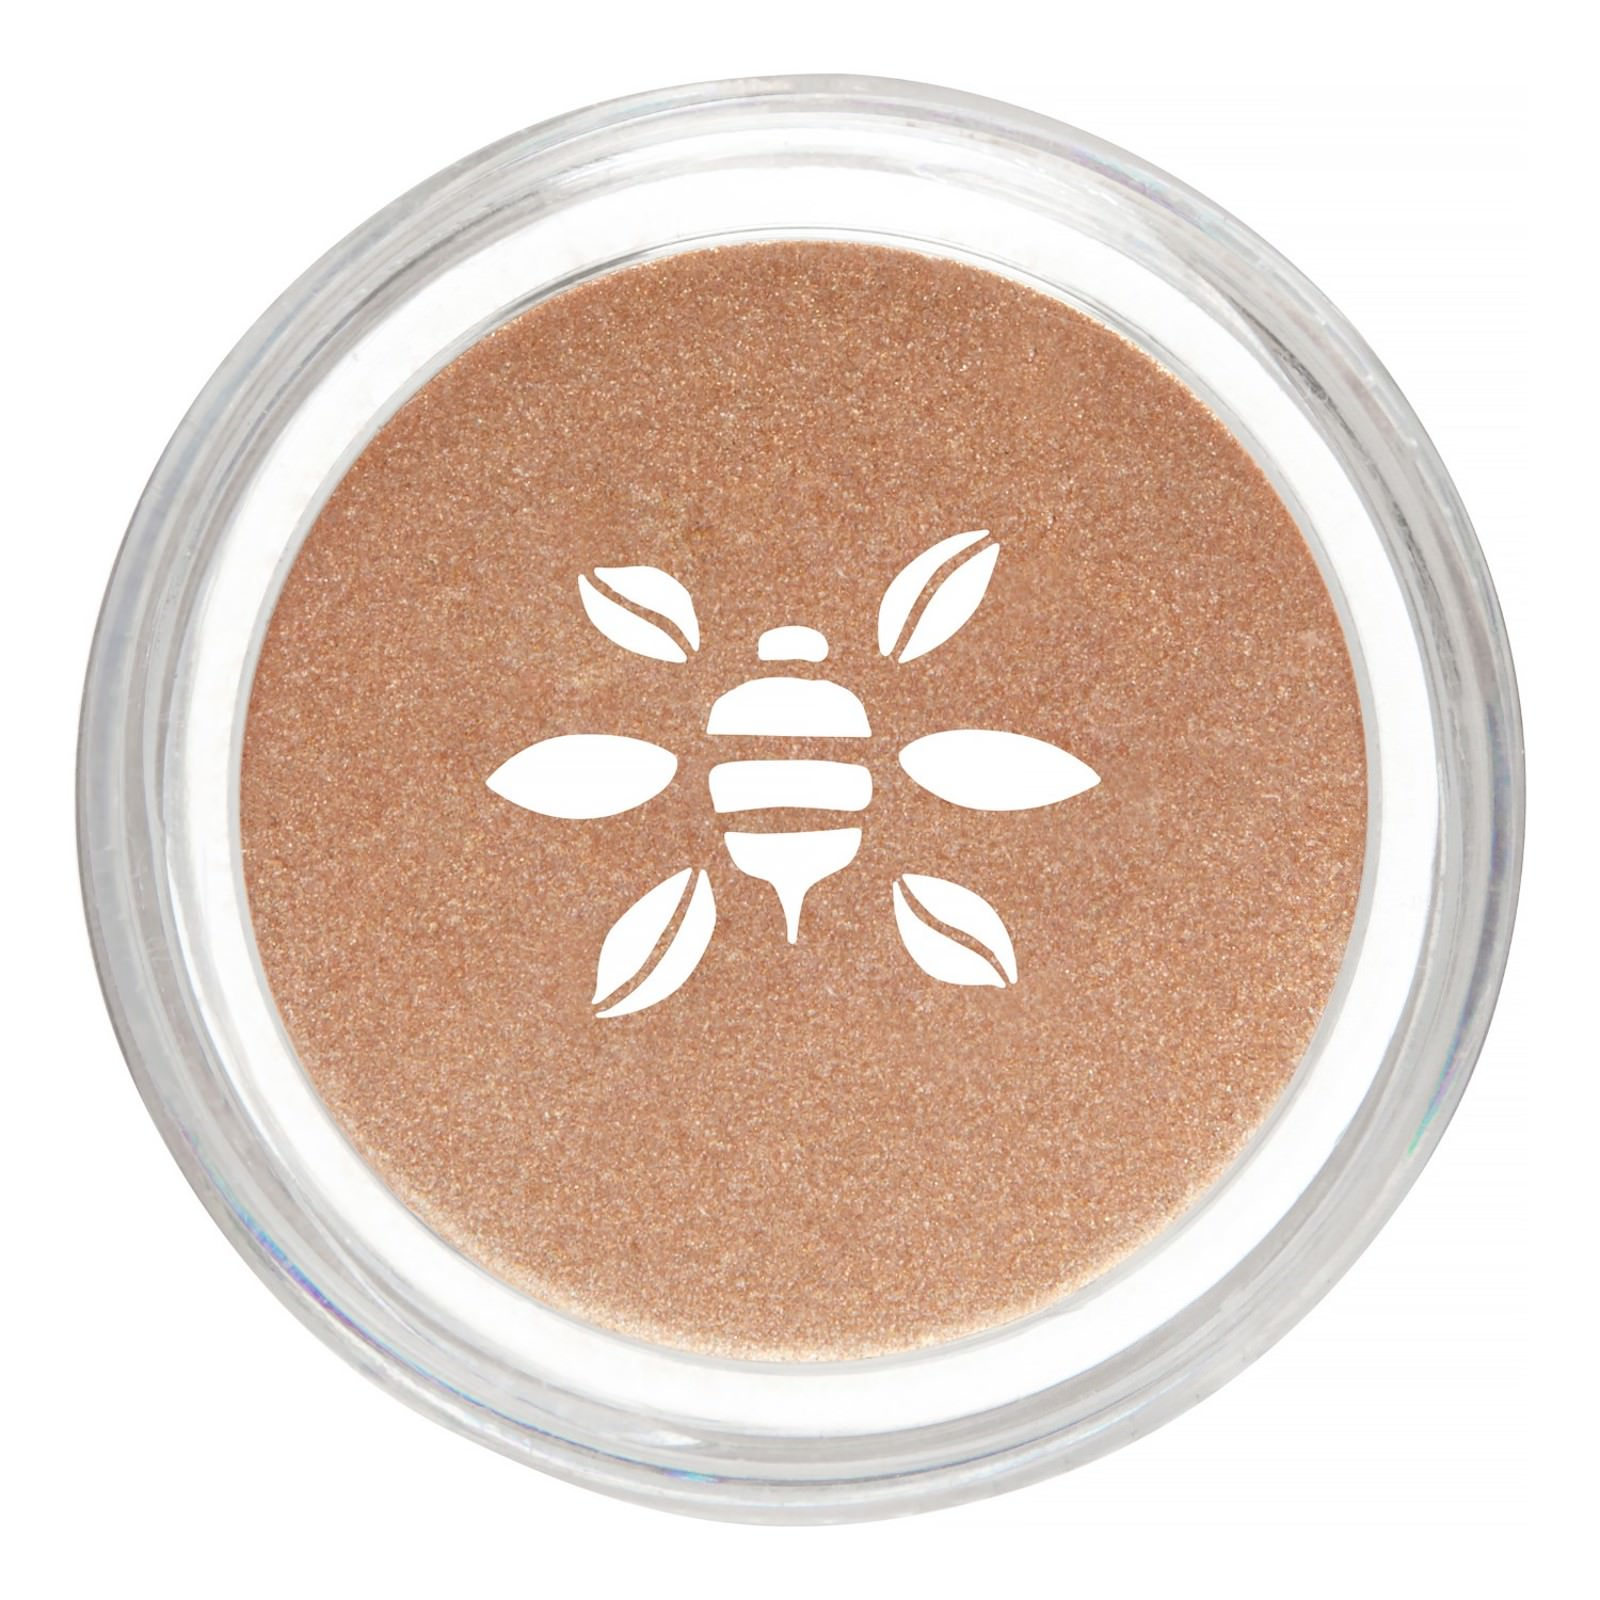 Honeybee Gardens PowderColors Eye Shadow Sedona